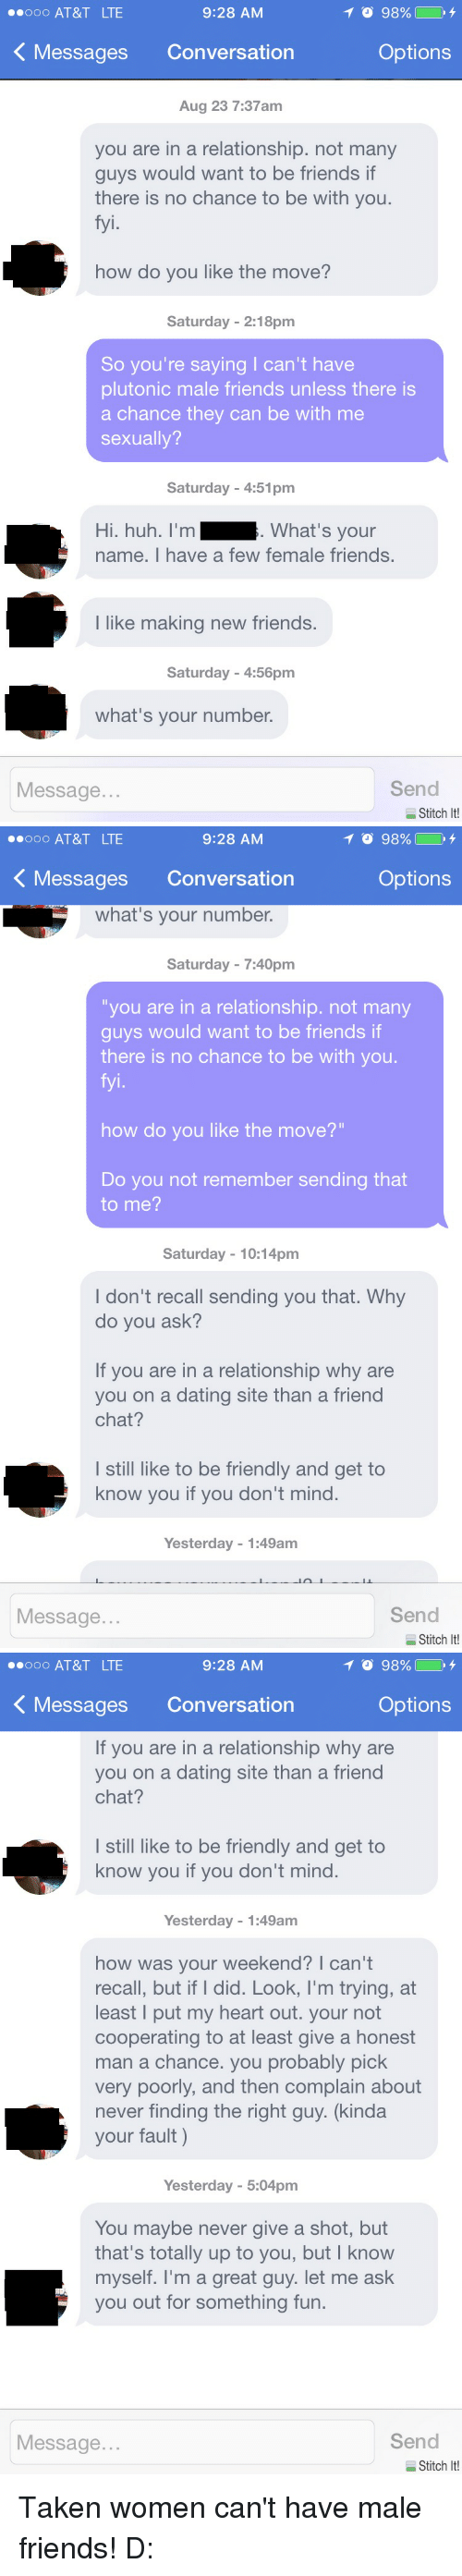 dating have phenomenal conversations with girls